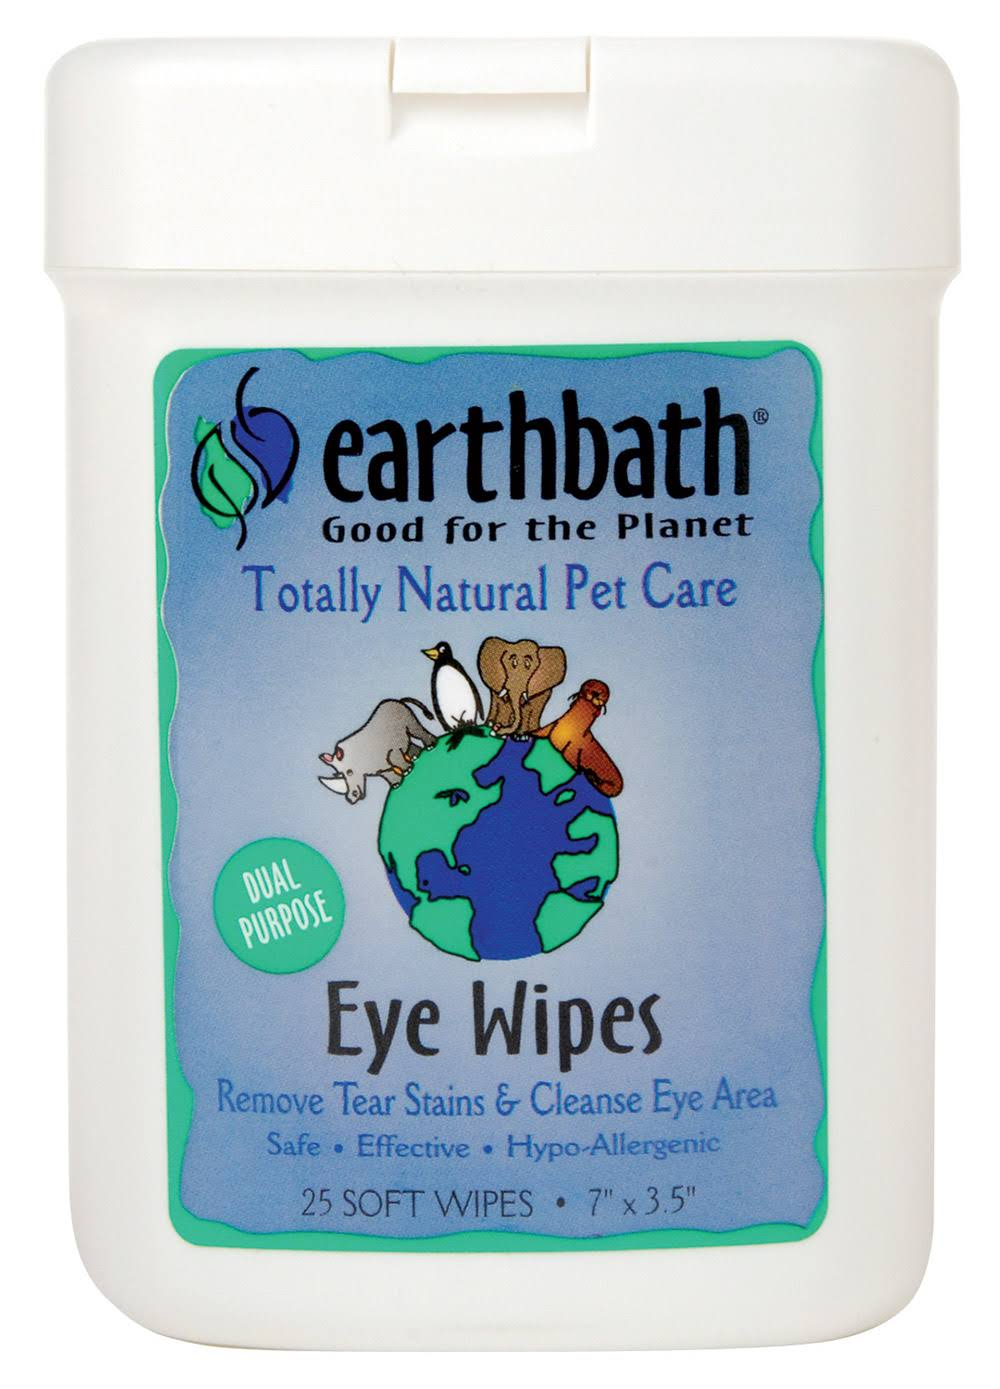 Earthbath Pet Eye Wipes - 25 Soft Wipes